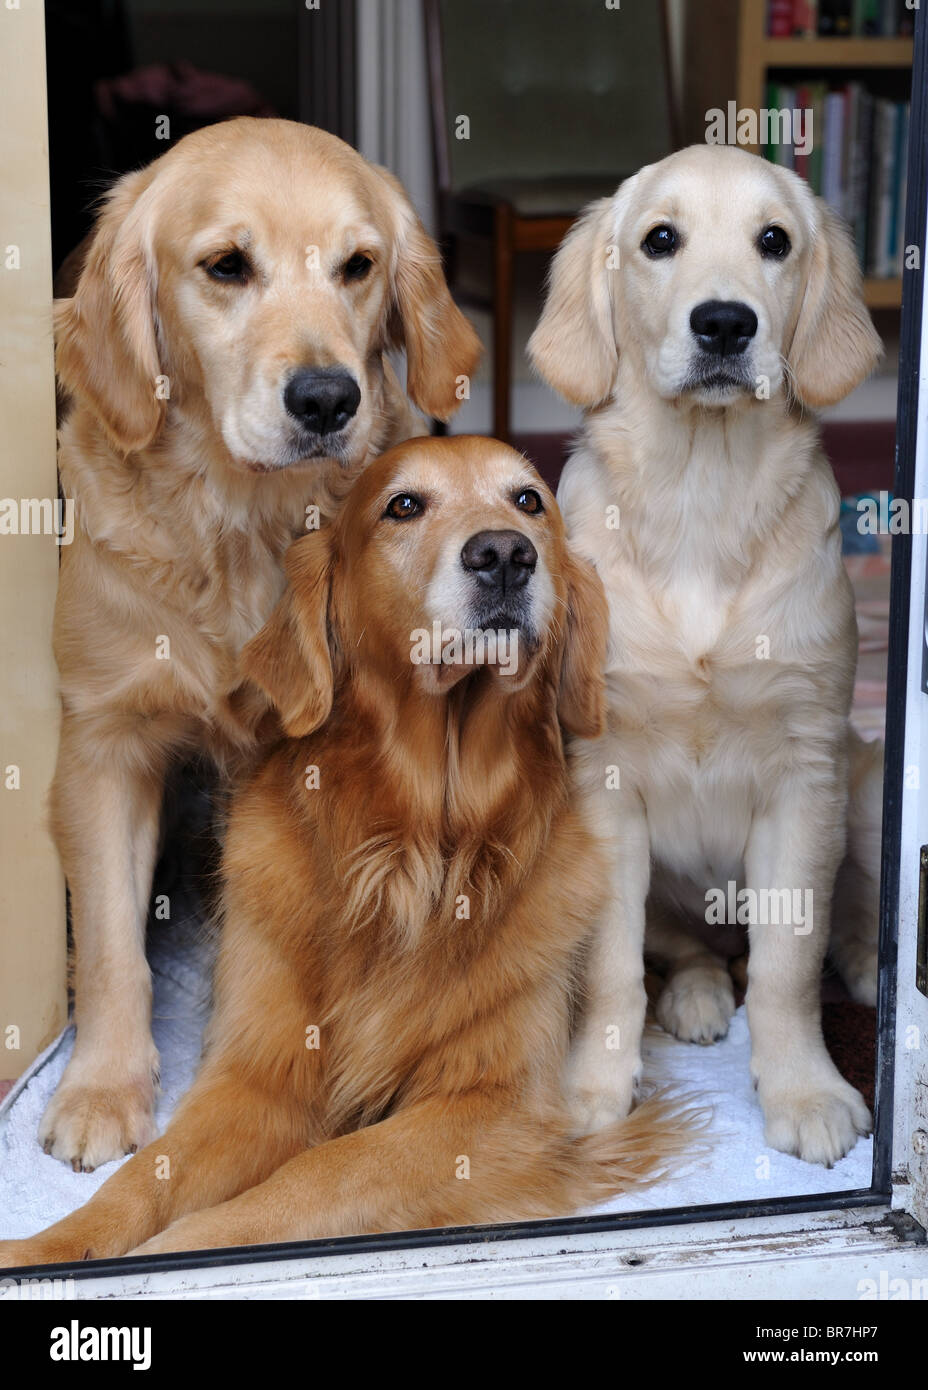 Three golden retrievers gathered in a doorway. - Stock Image